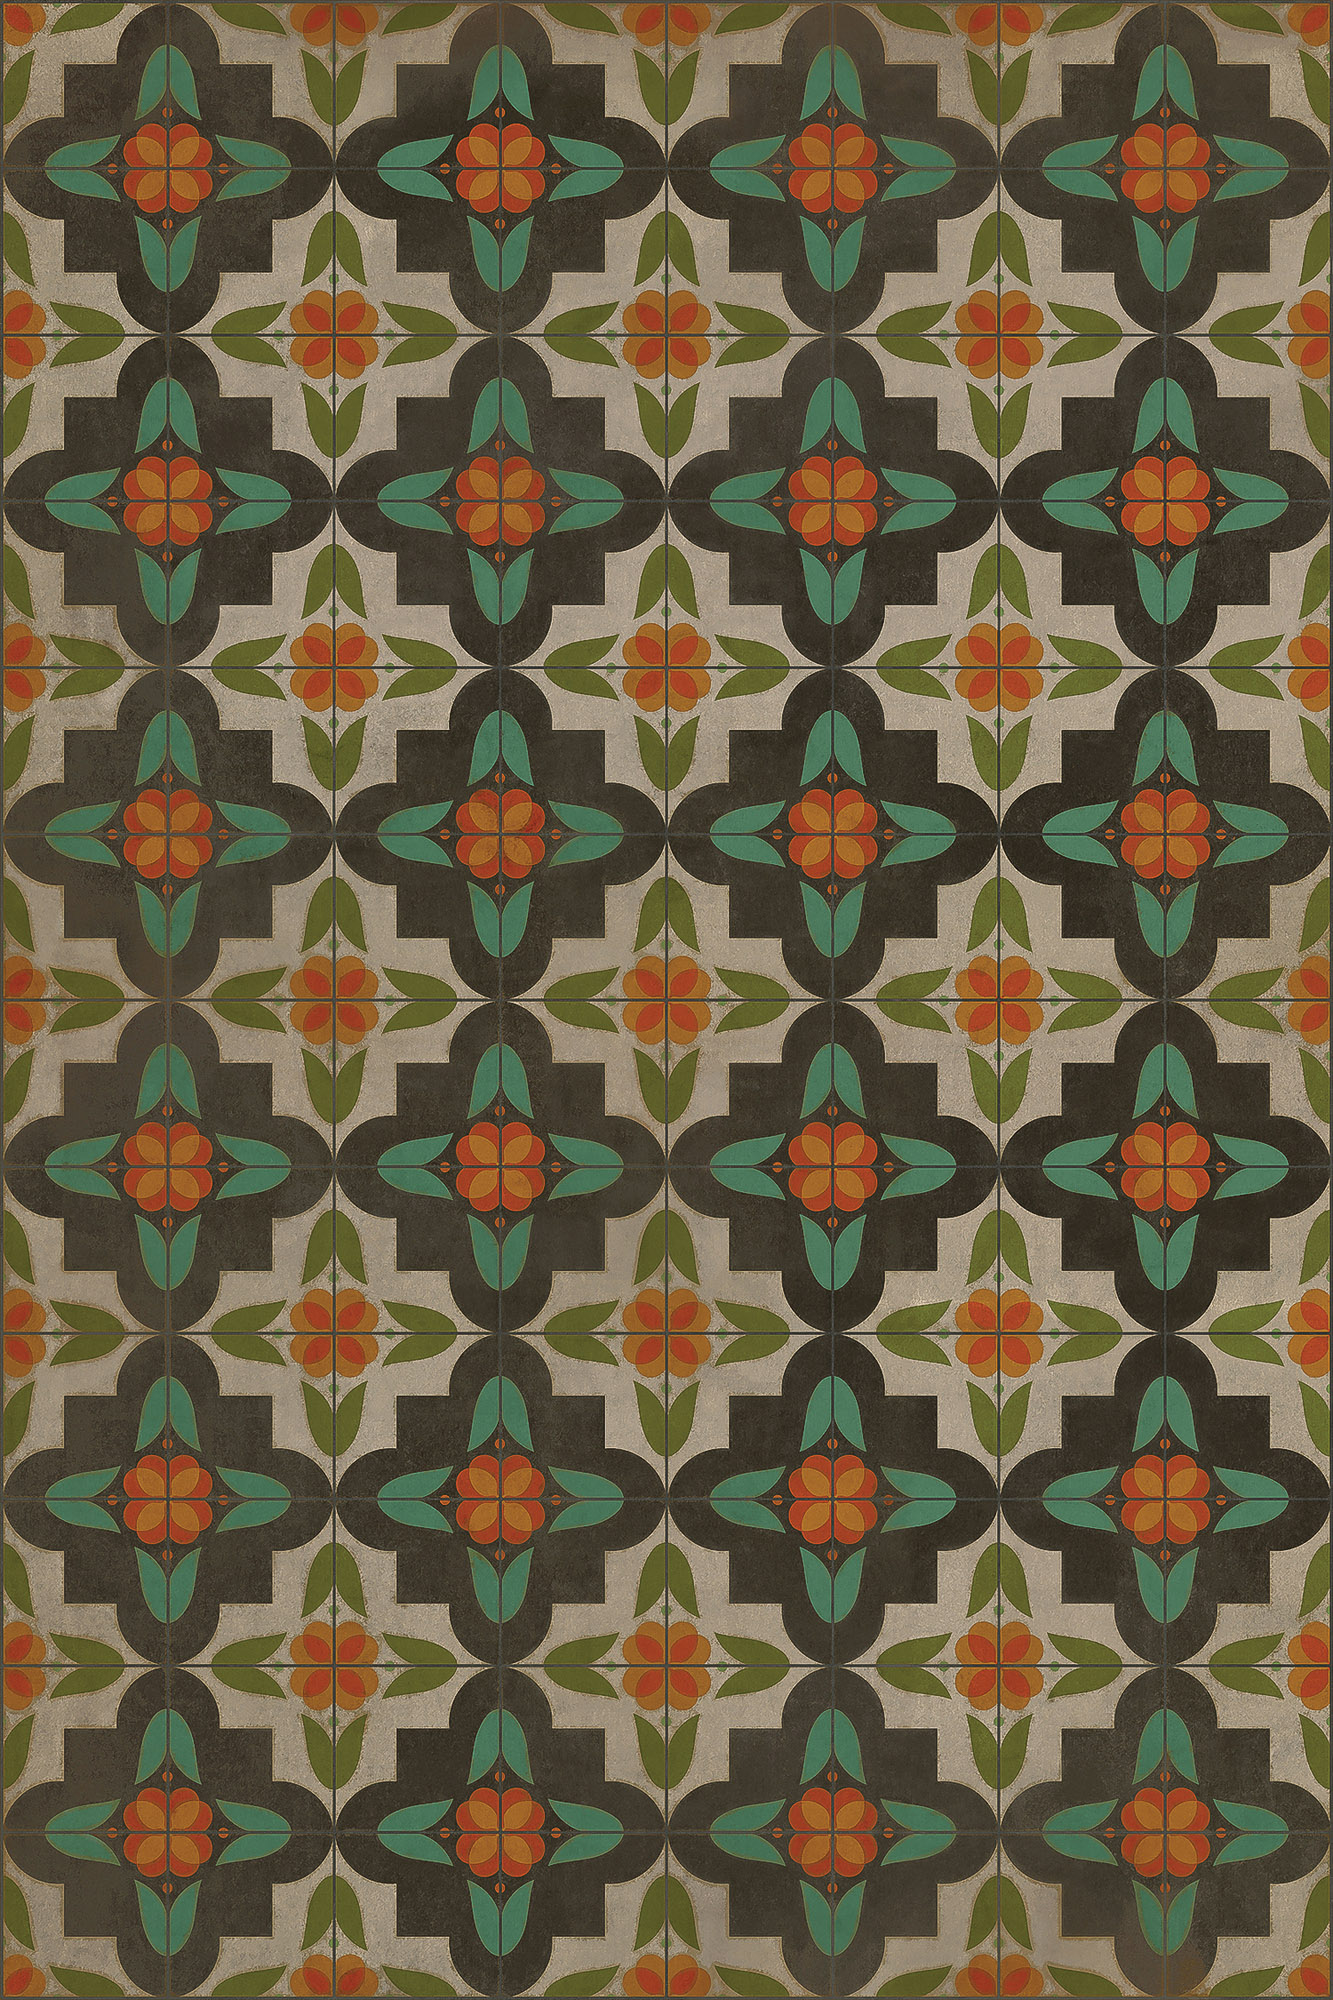 """""""Anna's Garden,"""" a geometric design with colors reminiscent of 1930s or '40s linoleum rugs, is part of the Vintage Vinyl collection."""